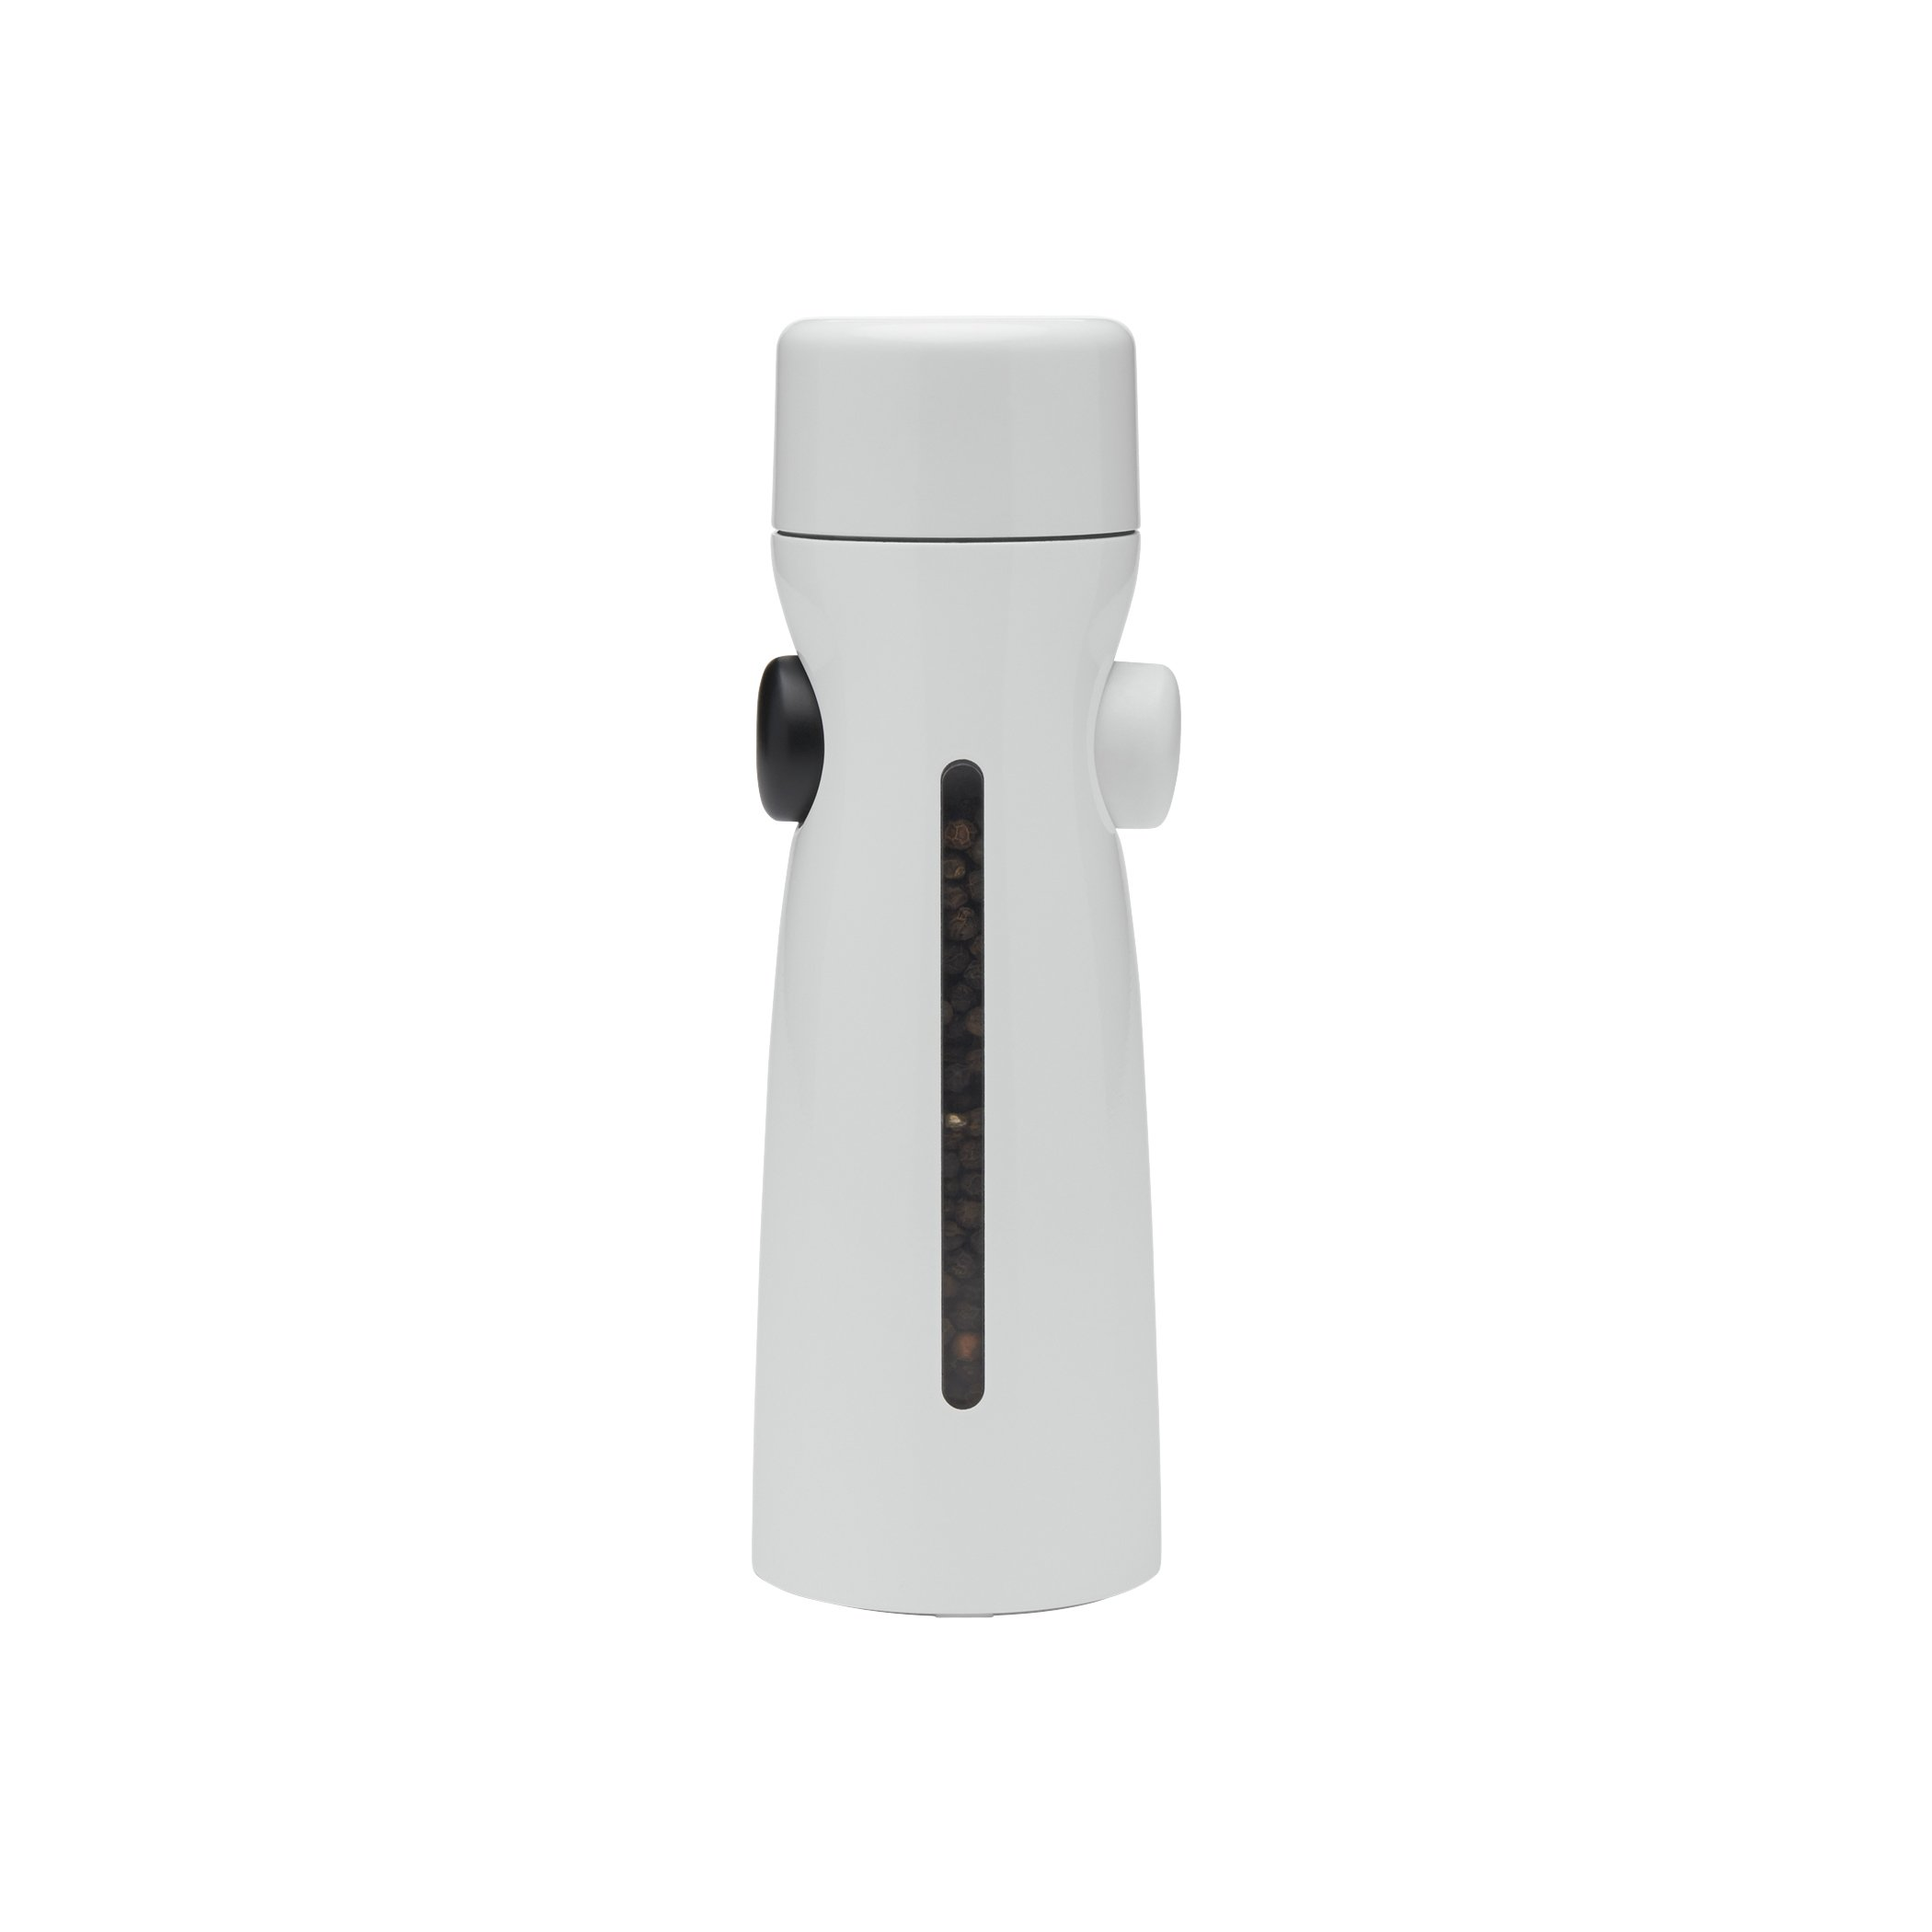 OXO Good Grips 2-in-1 Salt and Pepper Mill, White by OXO